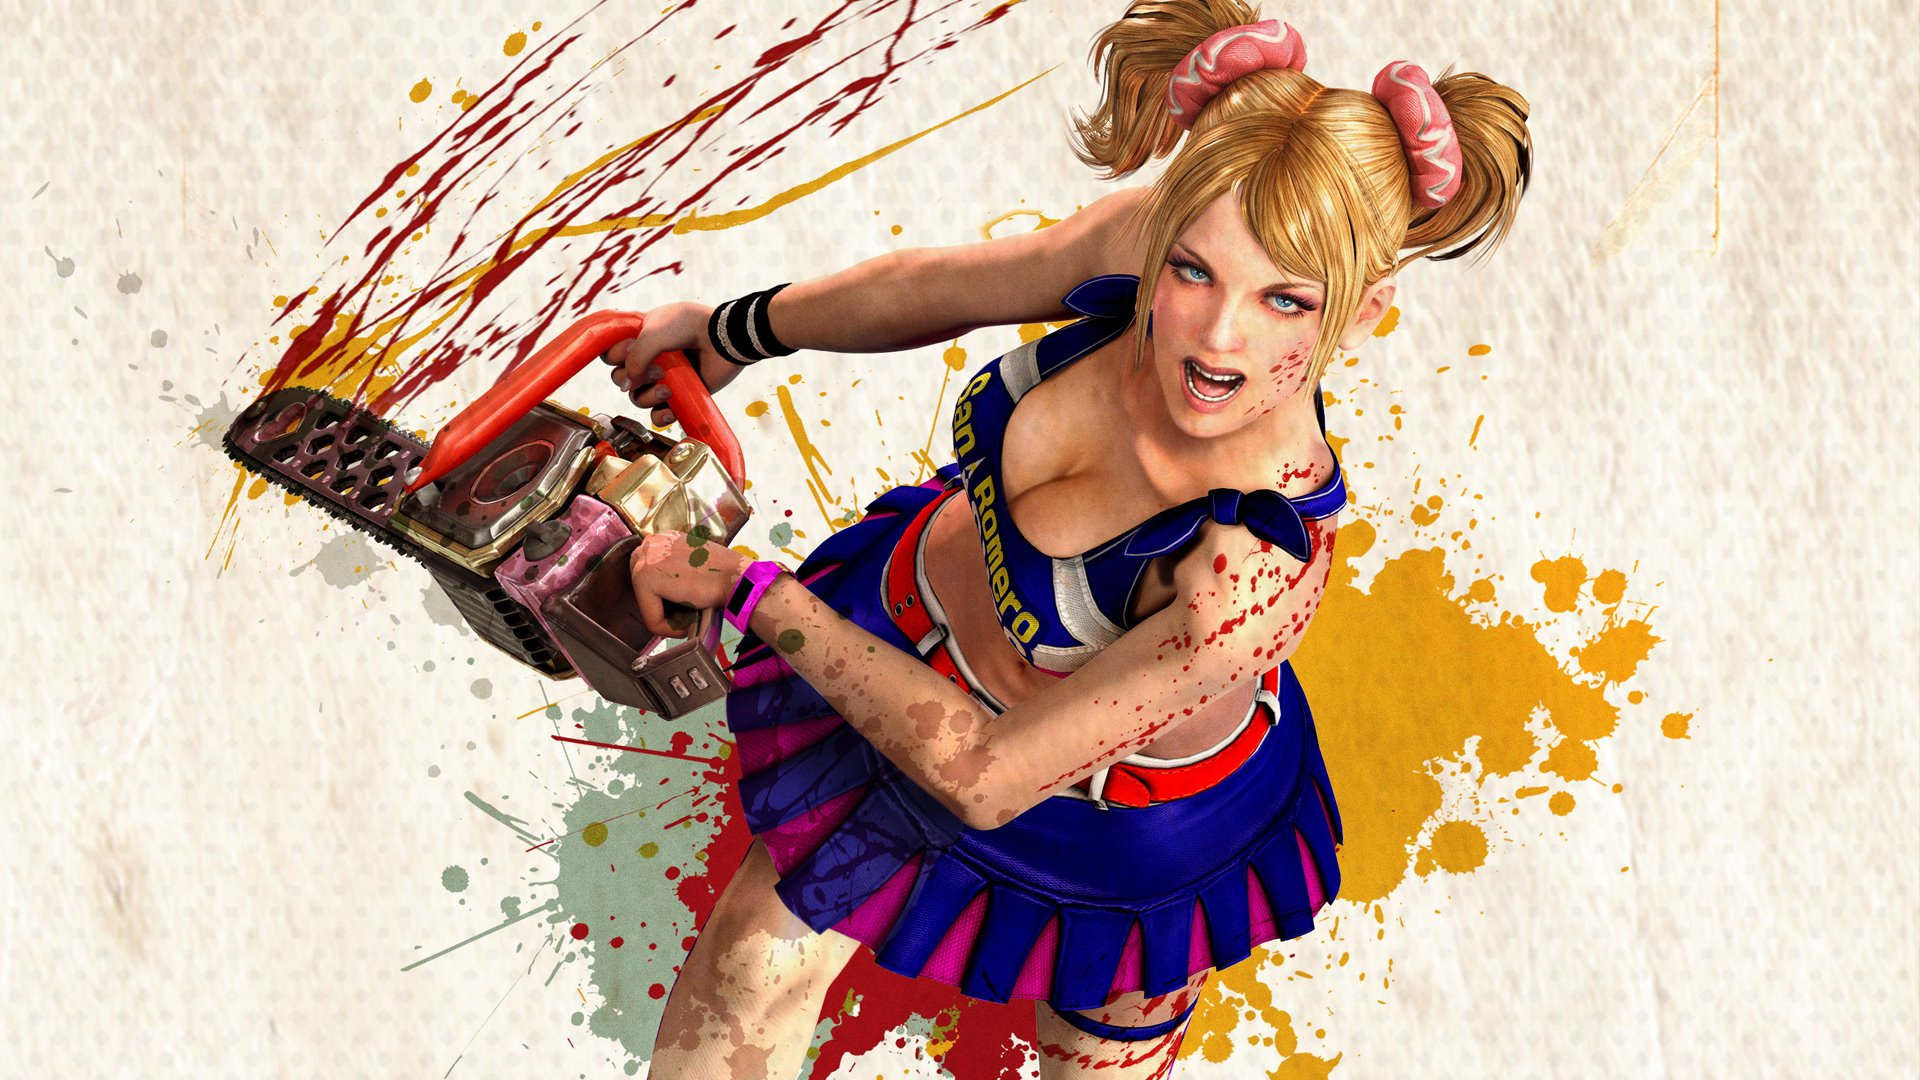 Lollipop Chainsaw Hd Wallpaper Background Image 1920x1080 Id